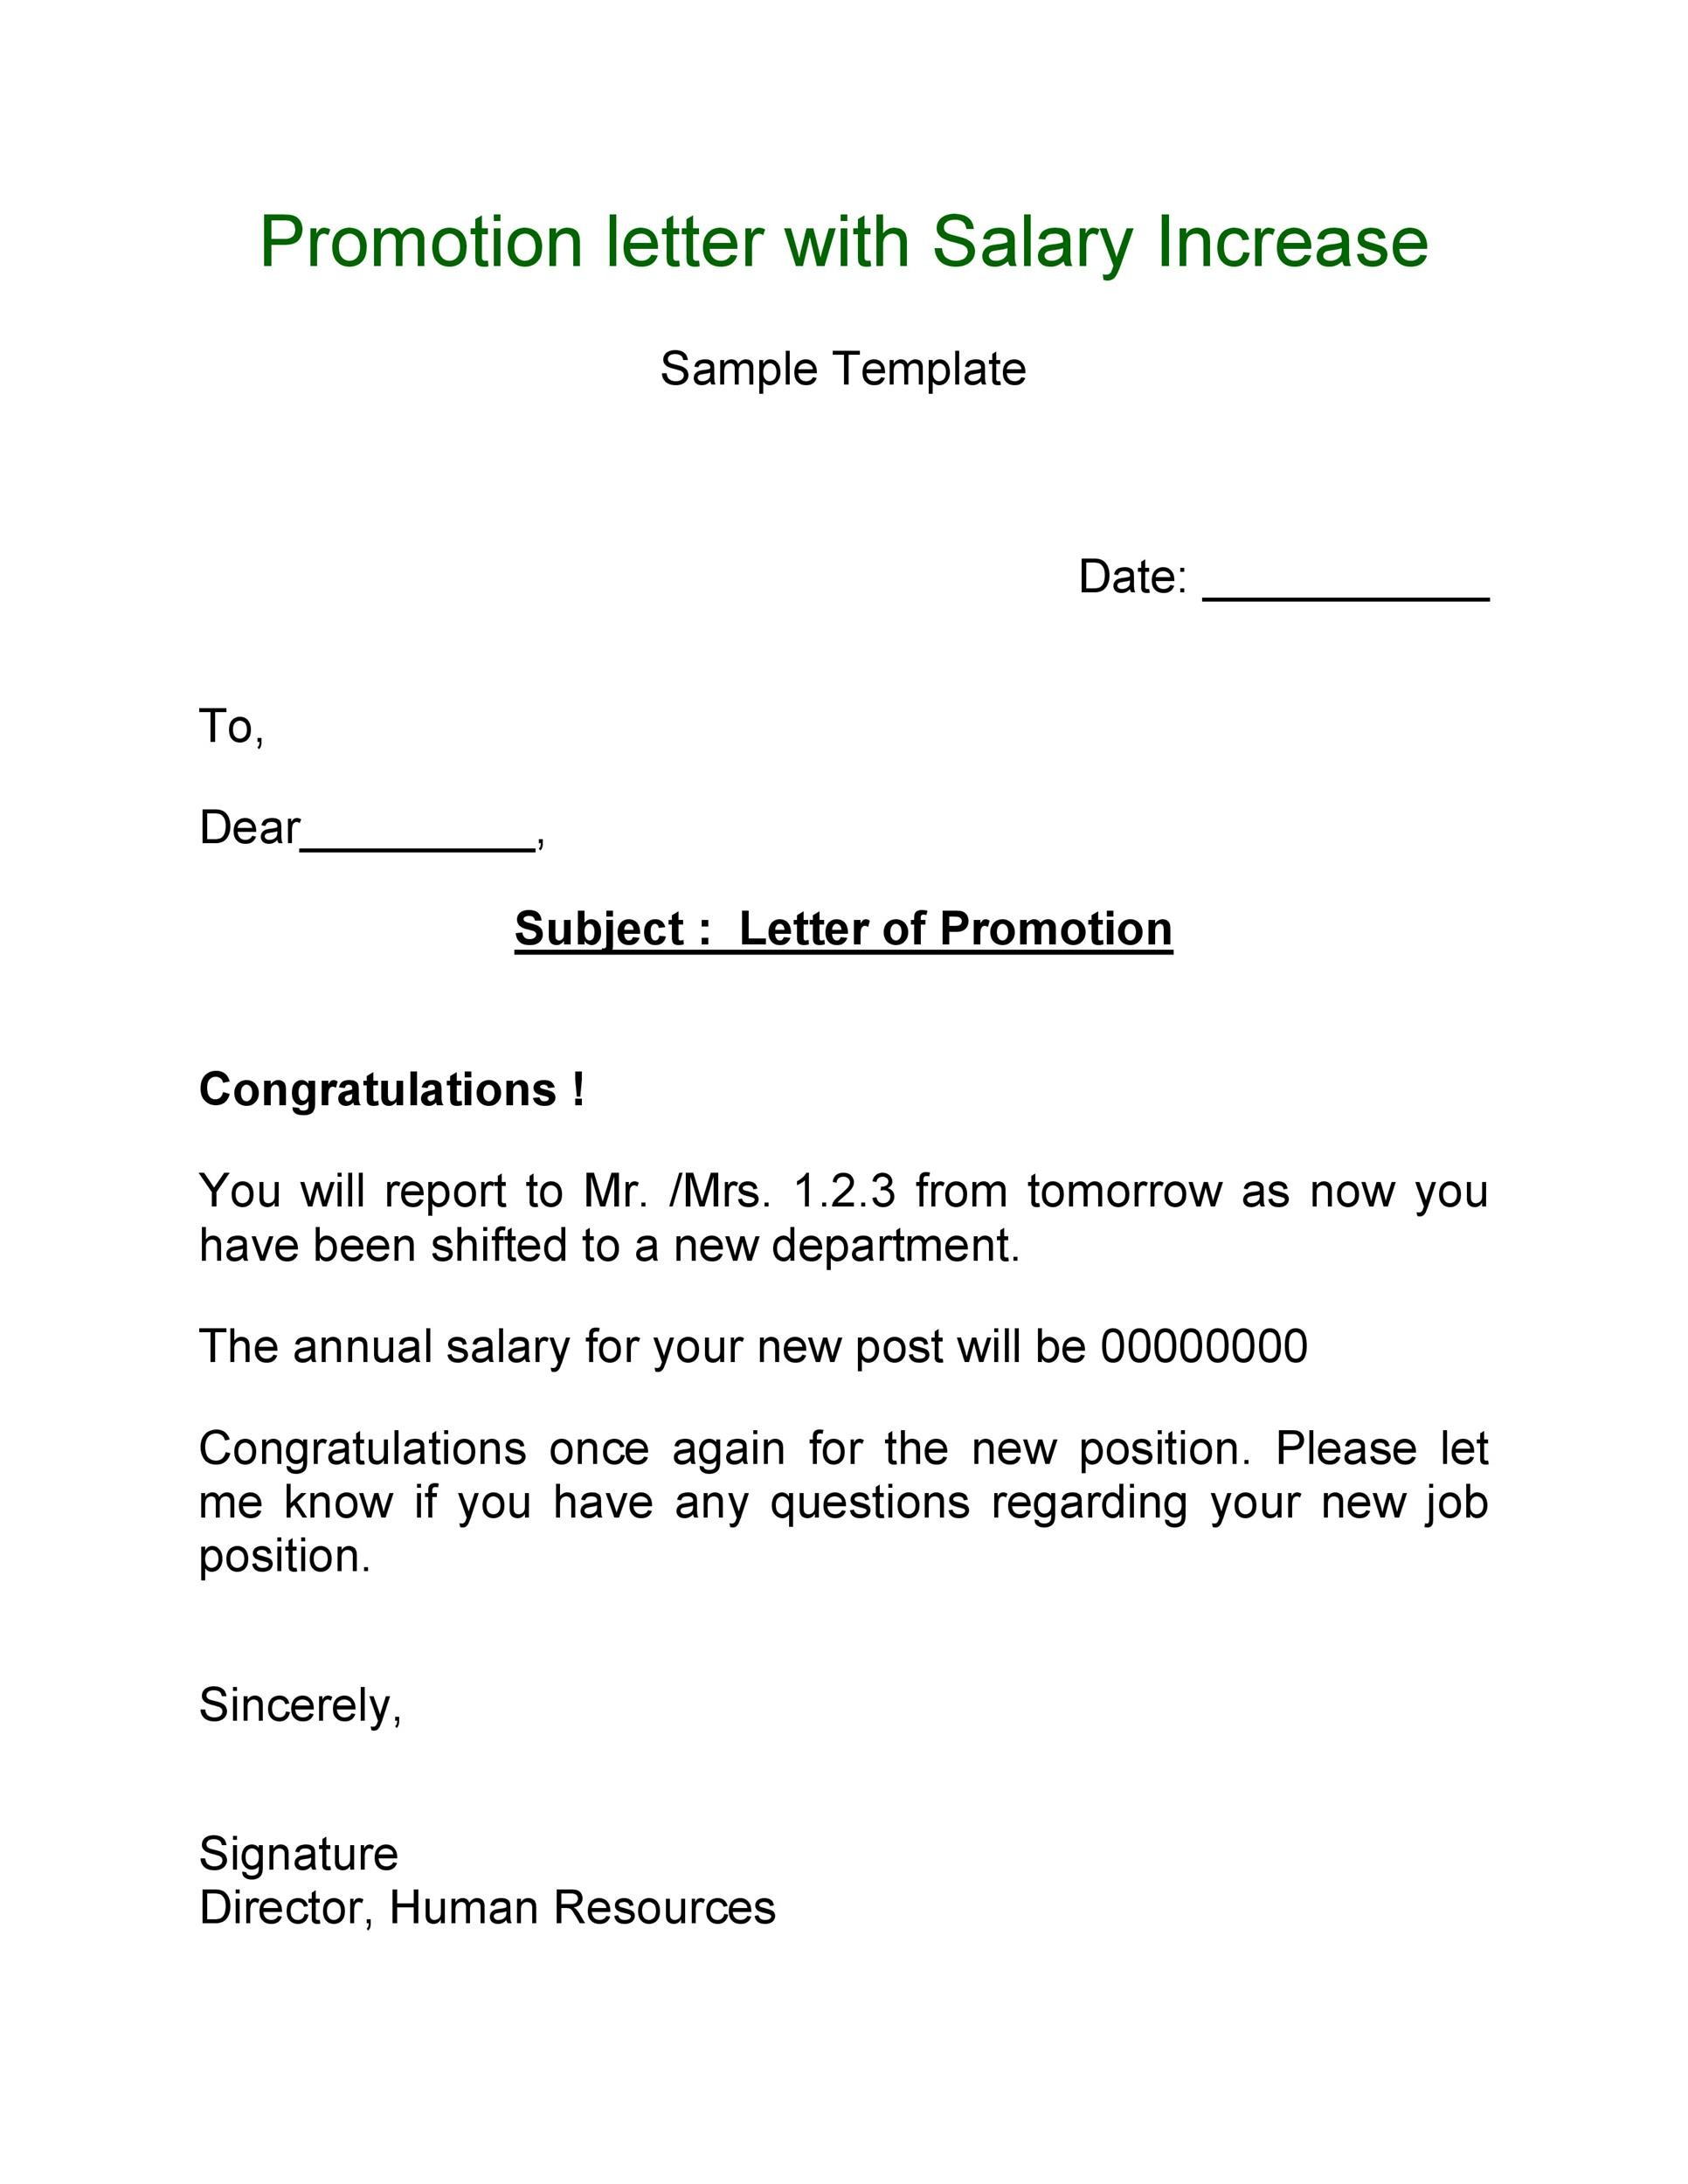 Free promotion letter 15